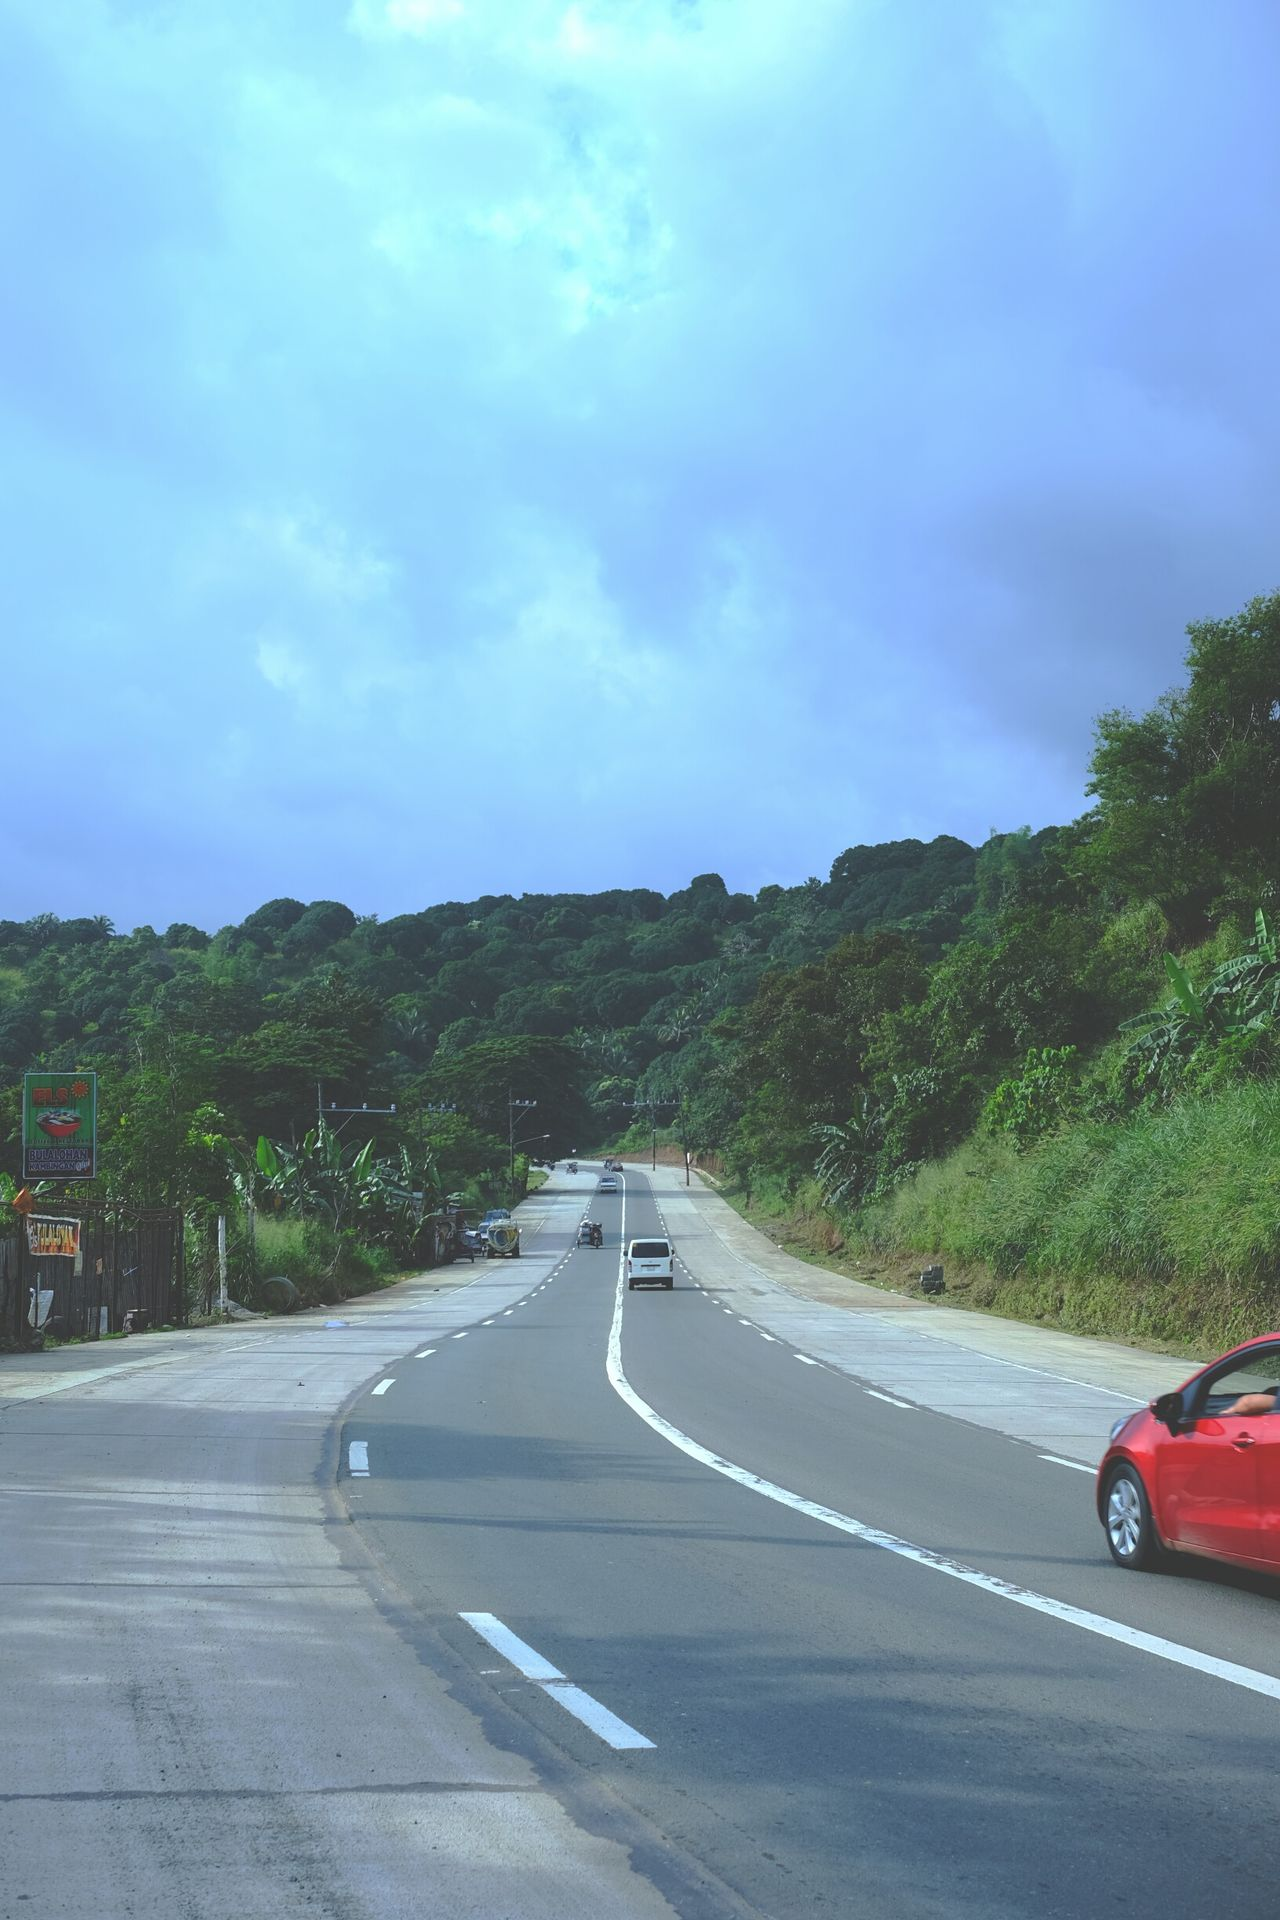 Road Cars Automobile And Nature Highway Trees Green Nature Skies Sky Cloud Antipolo Rizal Philippines